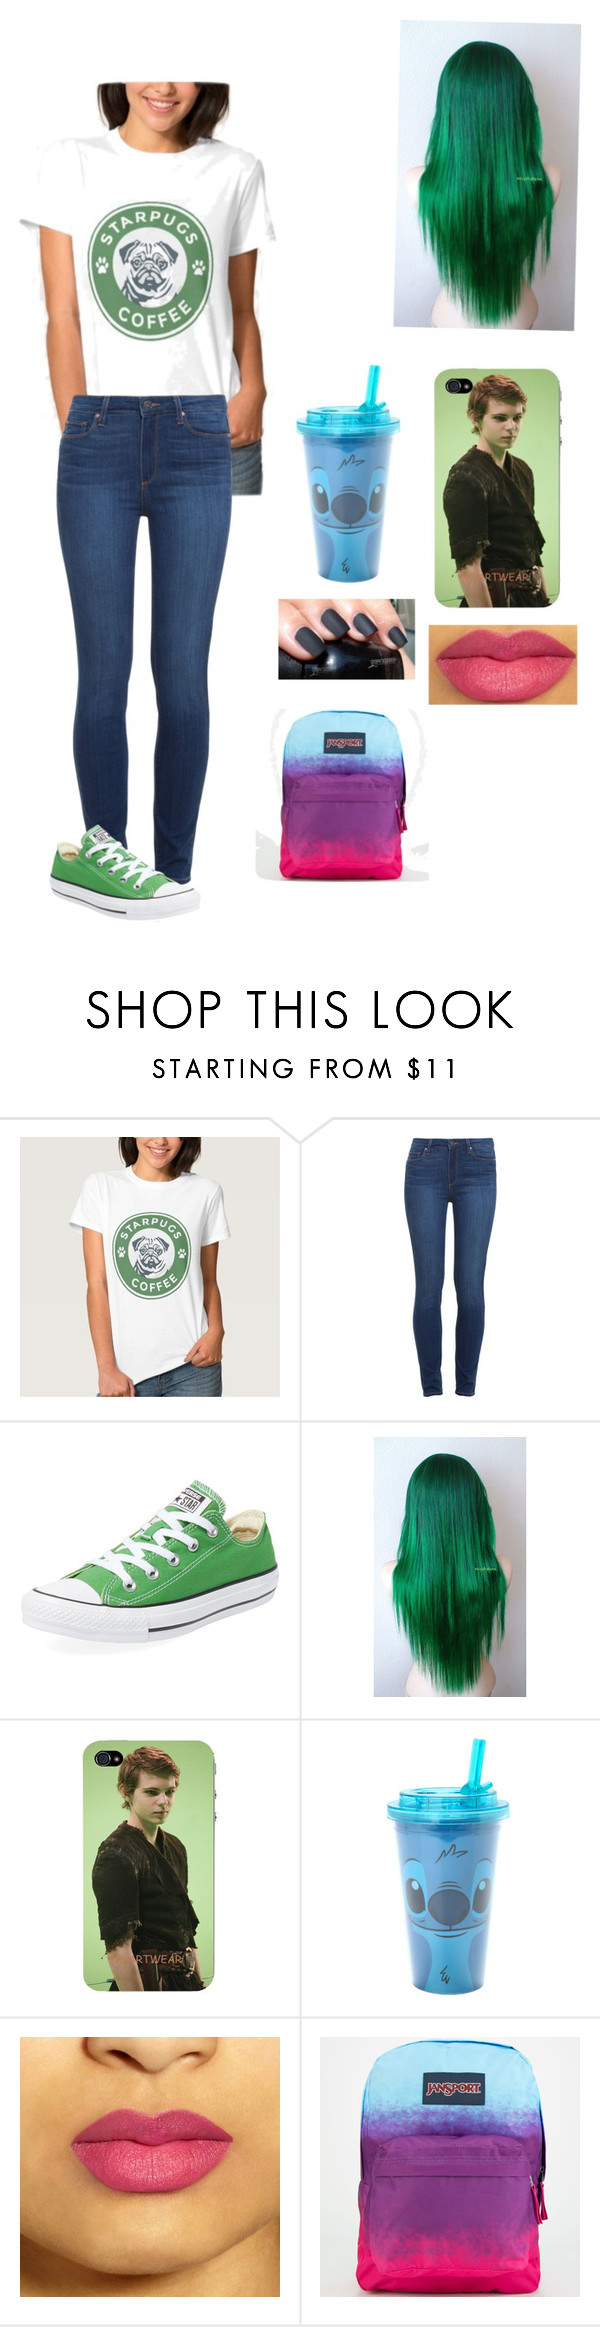 """Me"" by kjp456 ❤ liked on Polyvore featuring Paige Denim, Converse, Once Upon a Time, Disney and JanSport"